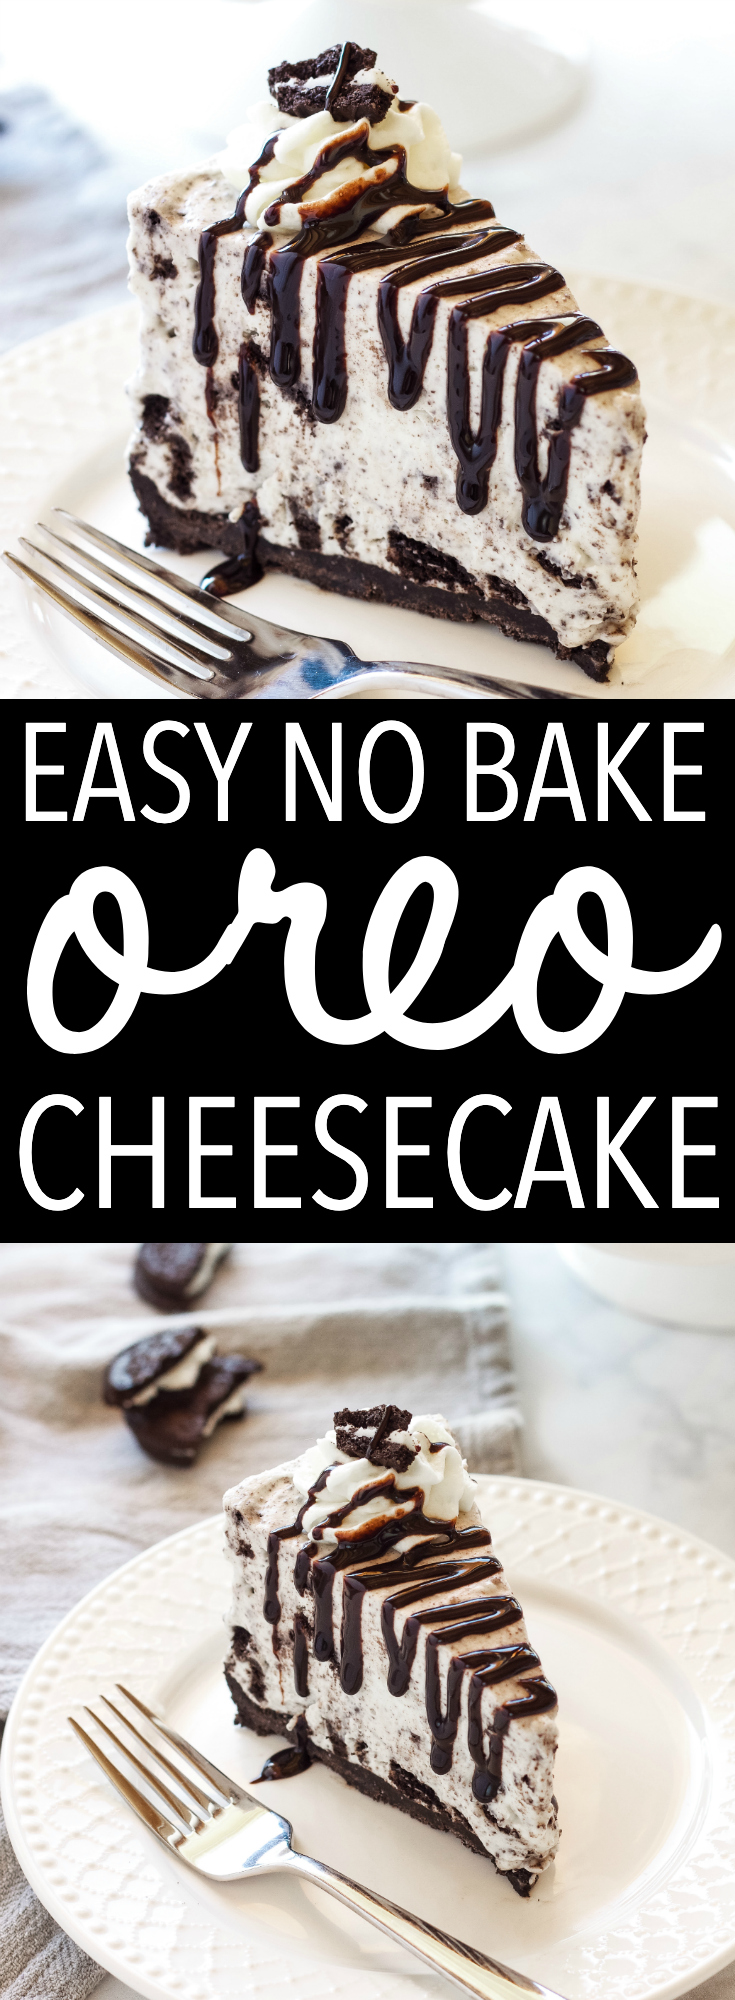 This Easy No Bake Oreo Cheesecake is smooth and creamy - it's the perfect cheesecake recipe and it's SO easy to make! Recipe from thebusybaker.ca! via @busybakerblog